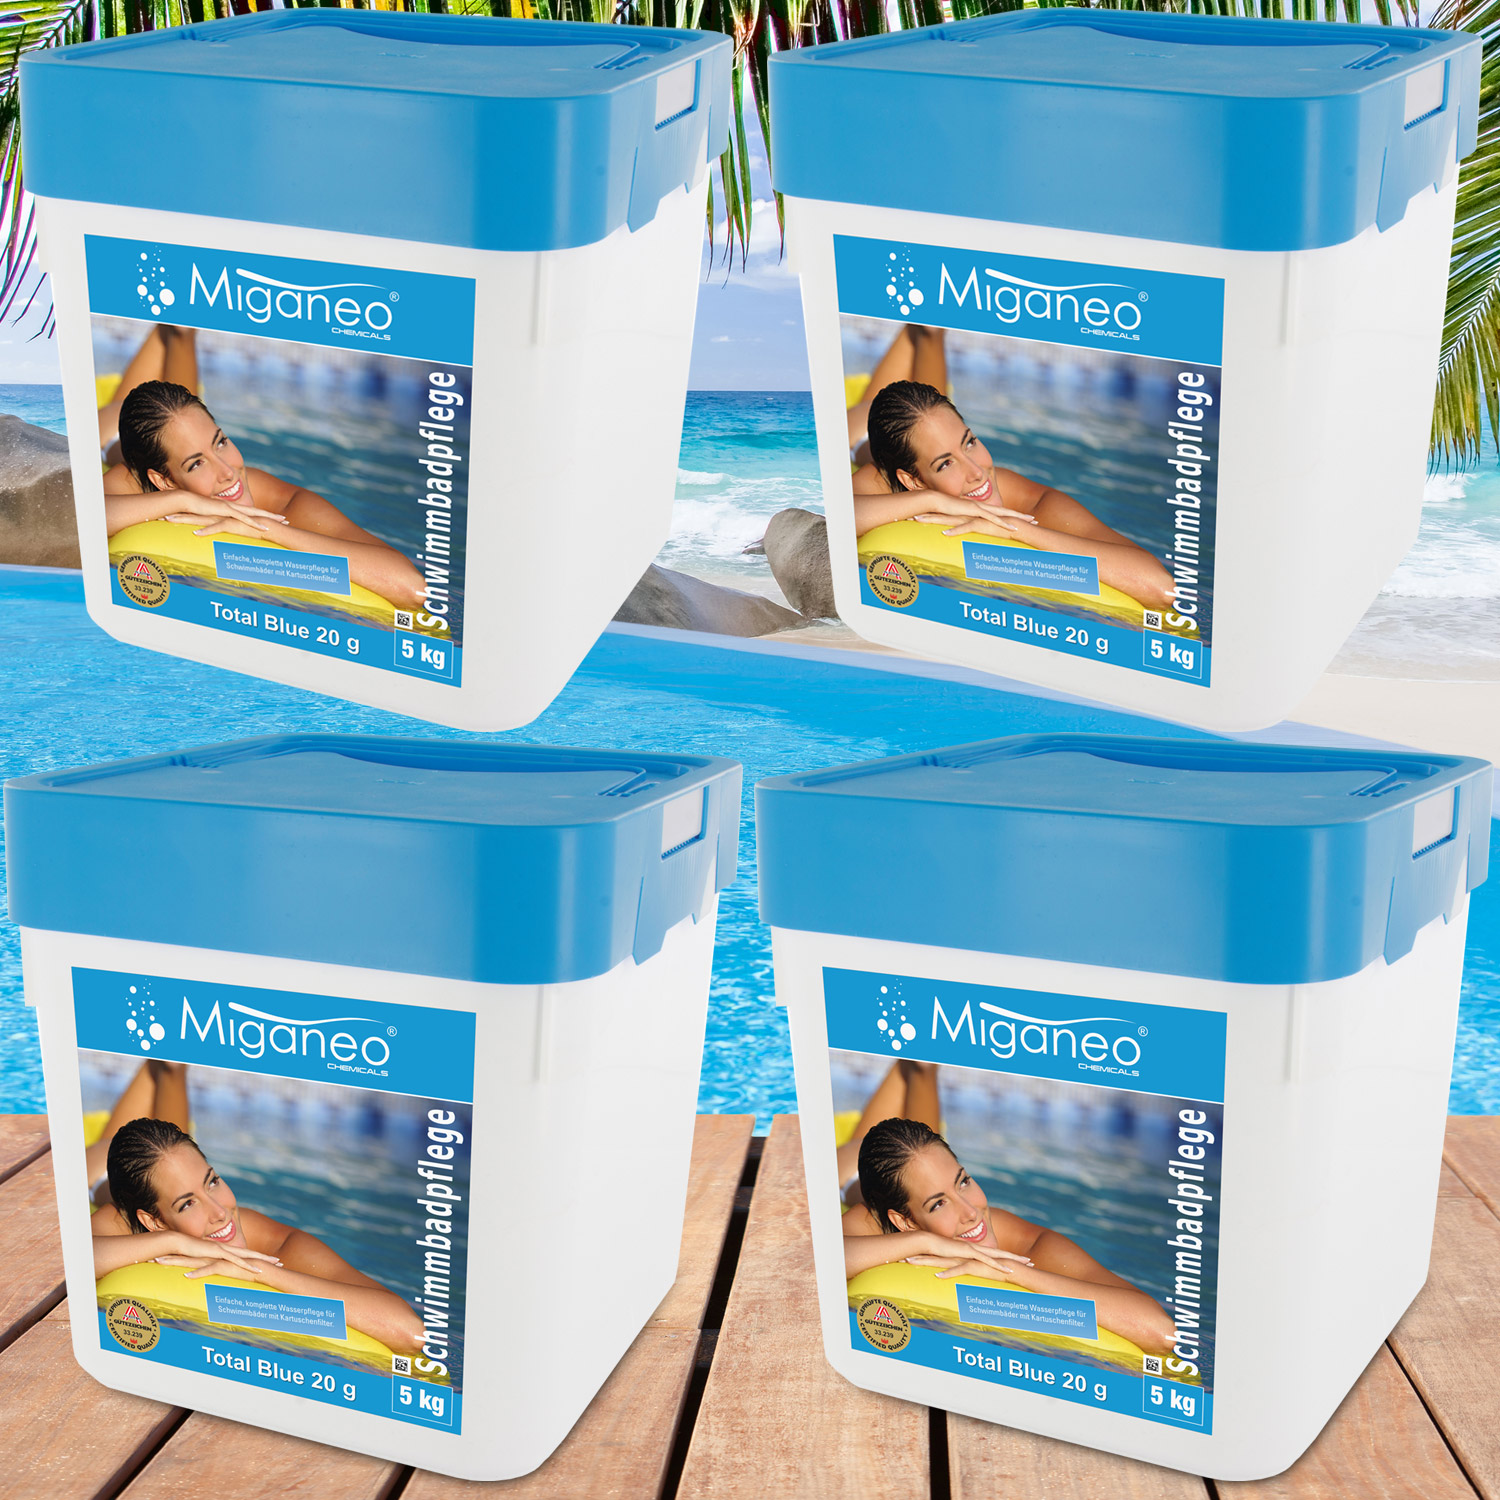 Obi Poolpflege Multitabs Pool Fabulous Delphin Duostar Pool Set With Multitabs